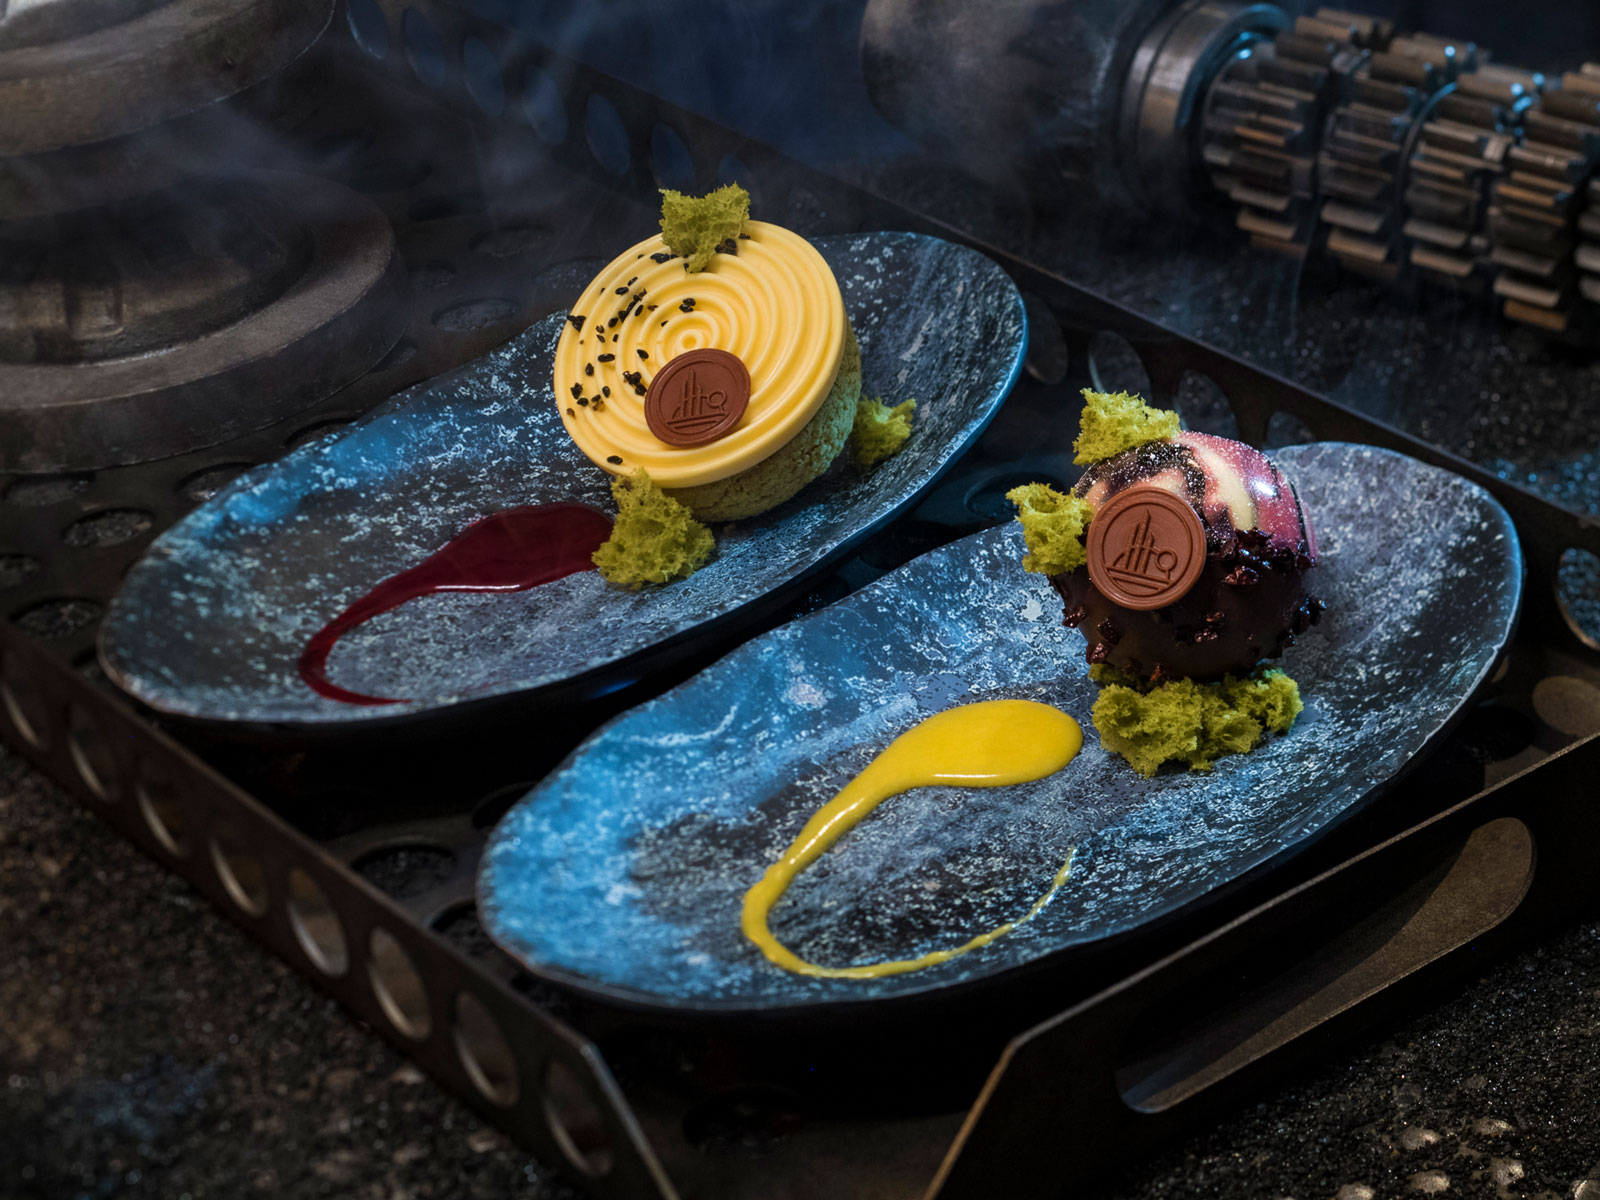 Star Wars: Galaxy's Edge Food